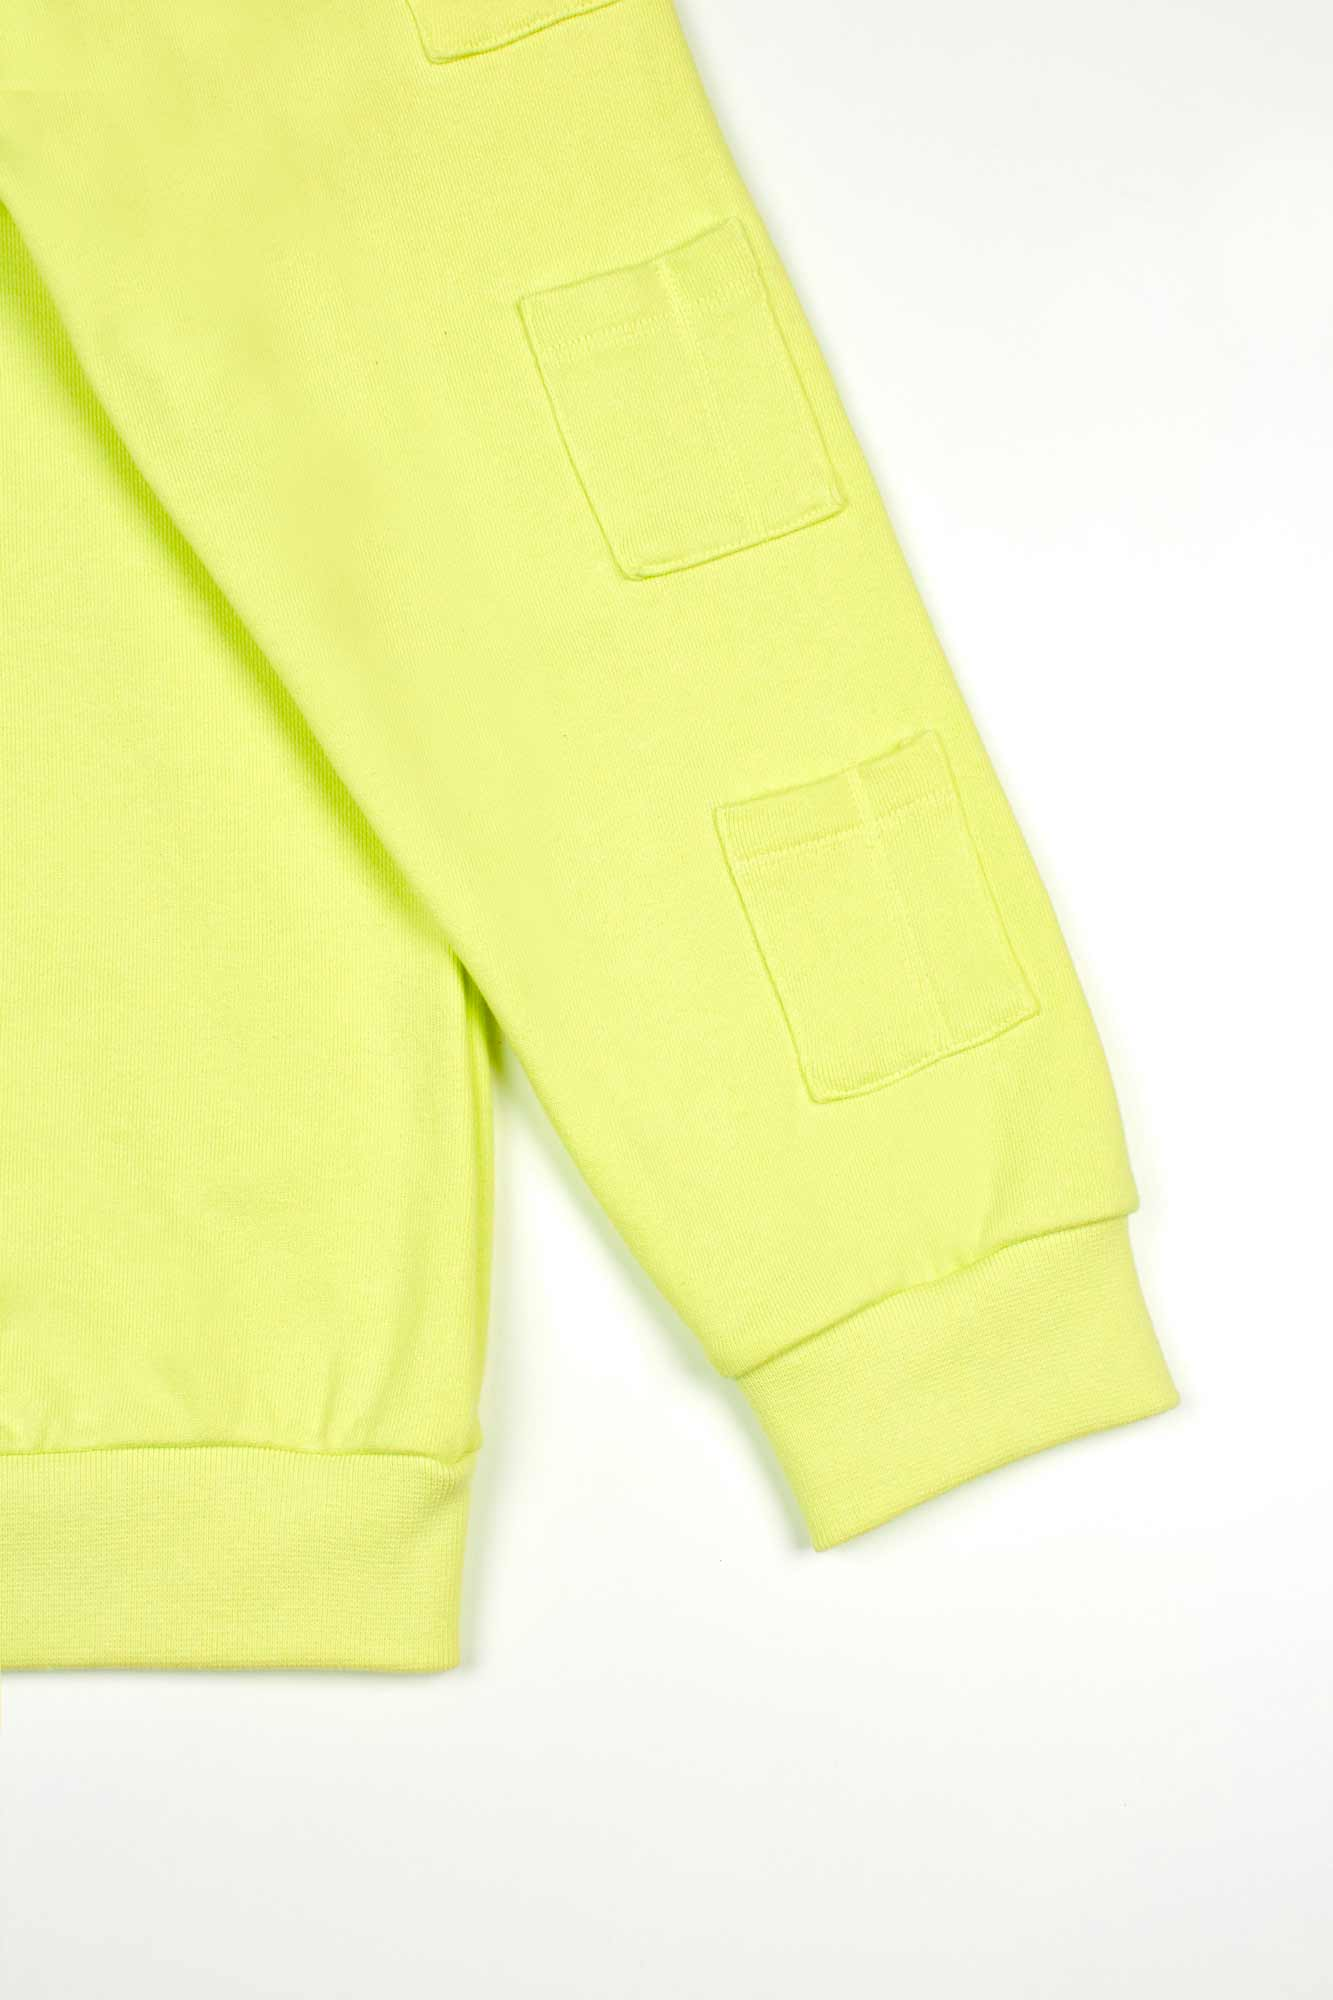 Photo of Lemonade Uniform Crewneck, number 5